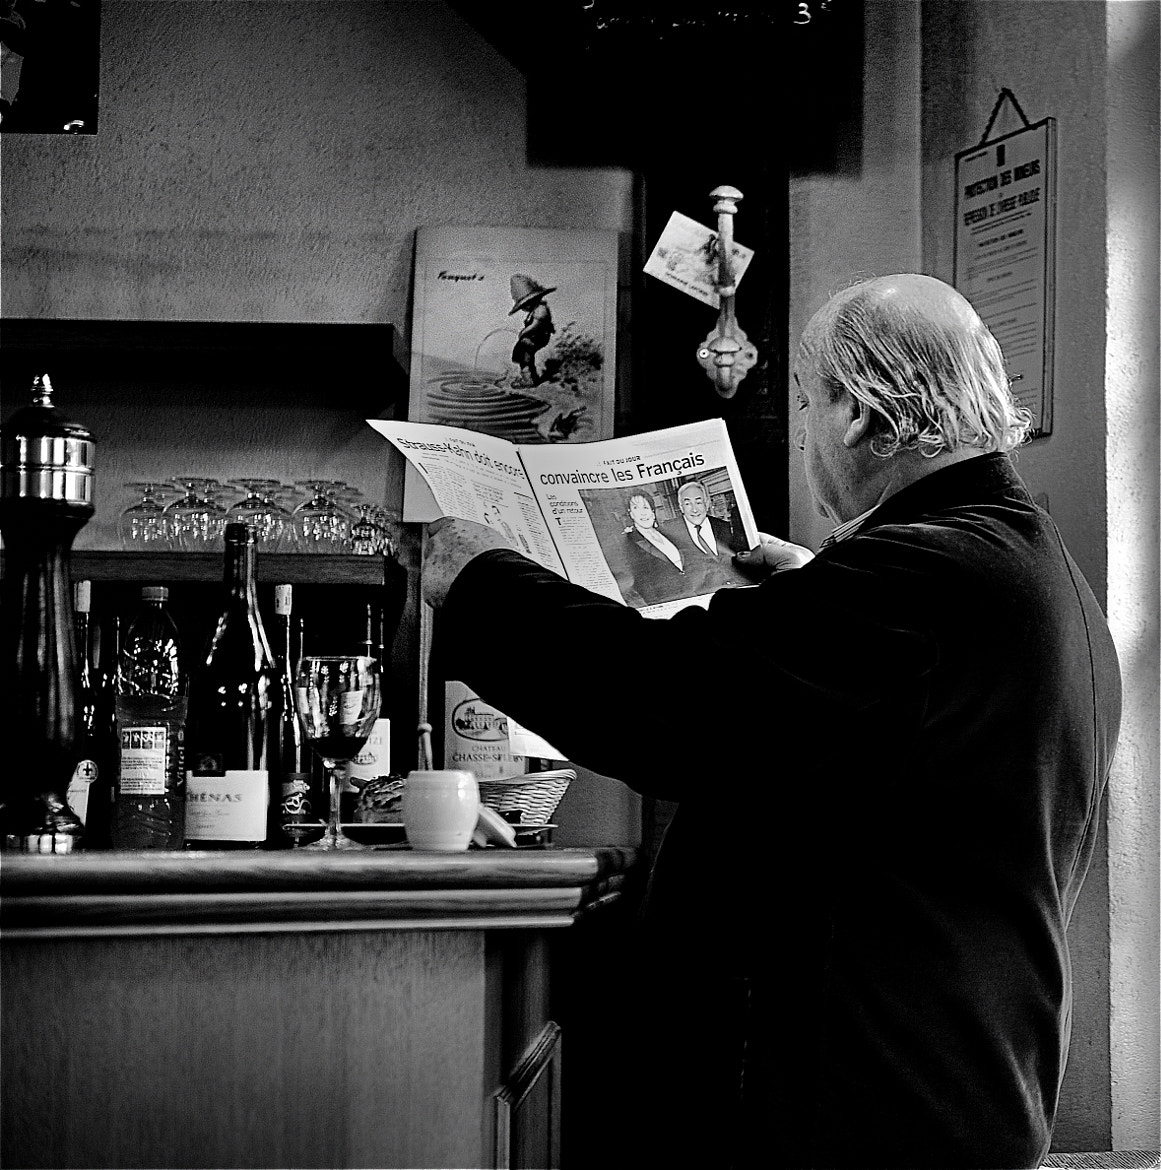 Photograph Morning news by Guib_Did Didier on 500px